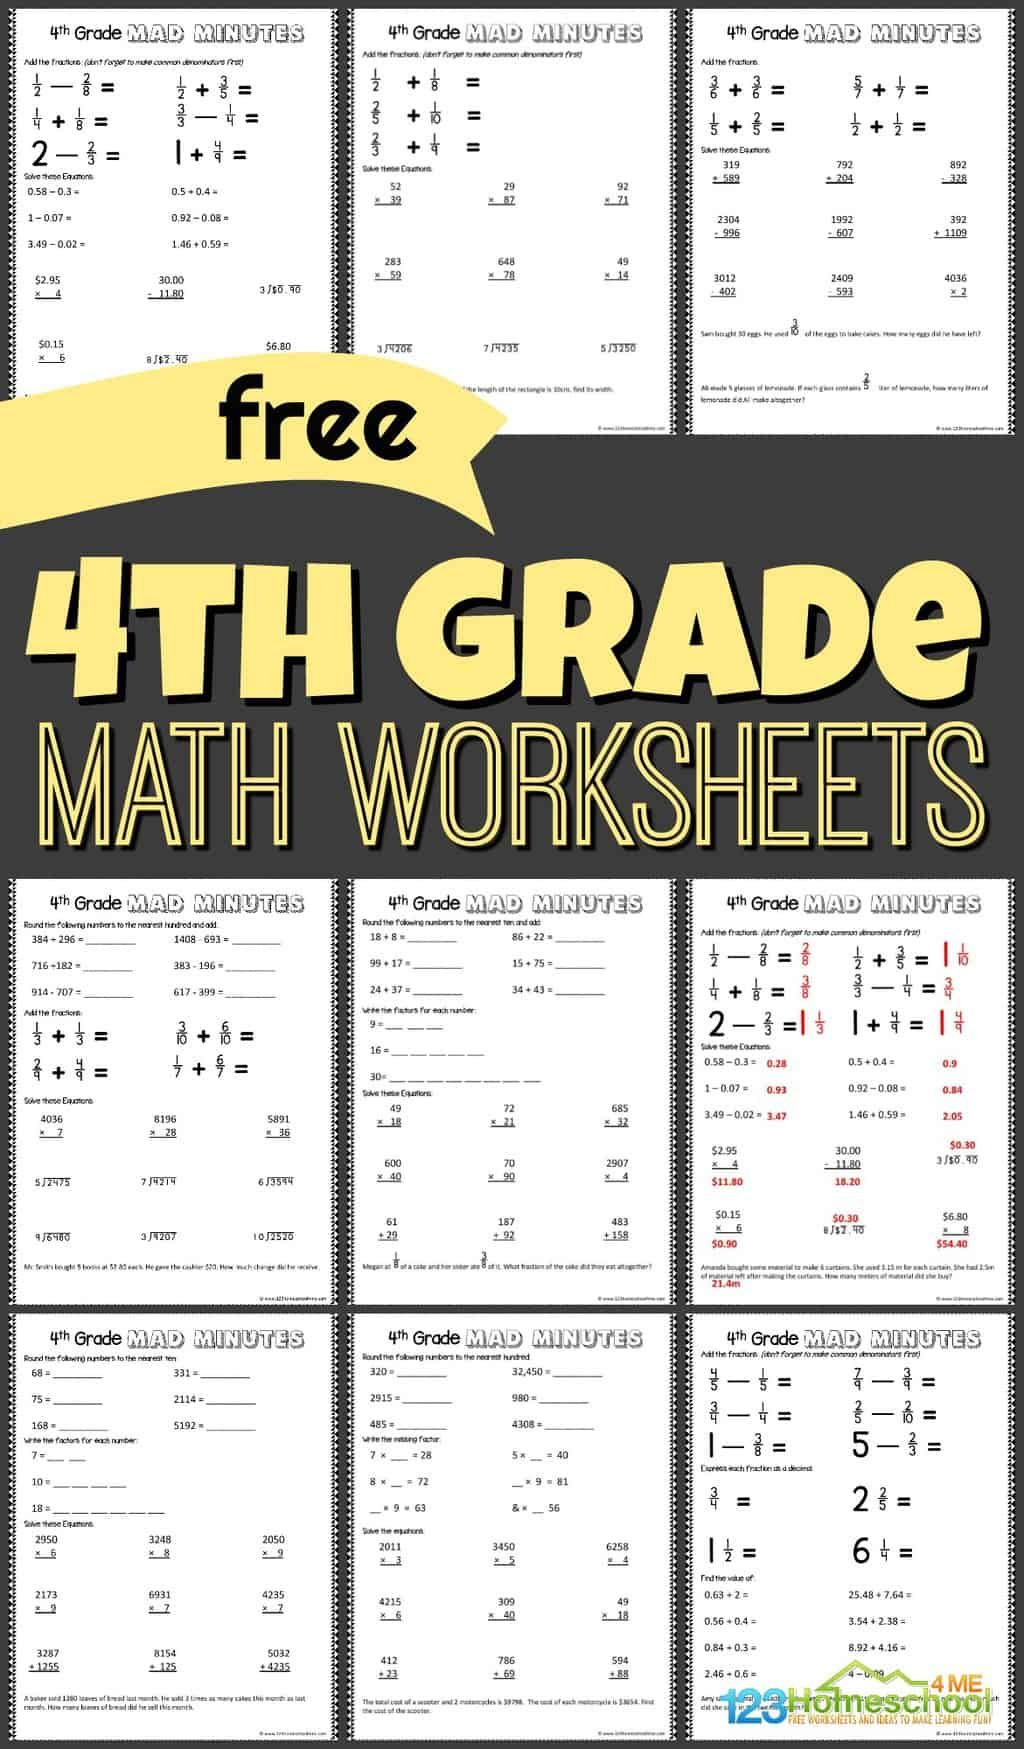 30 Free Printable Math Worksheets For 4th Grade Edea Smith